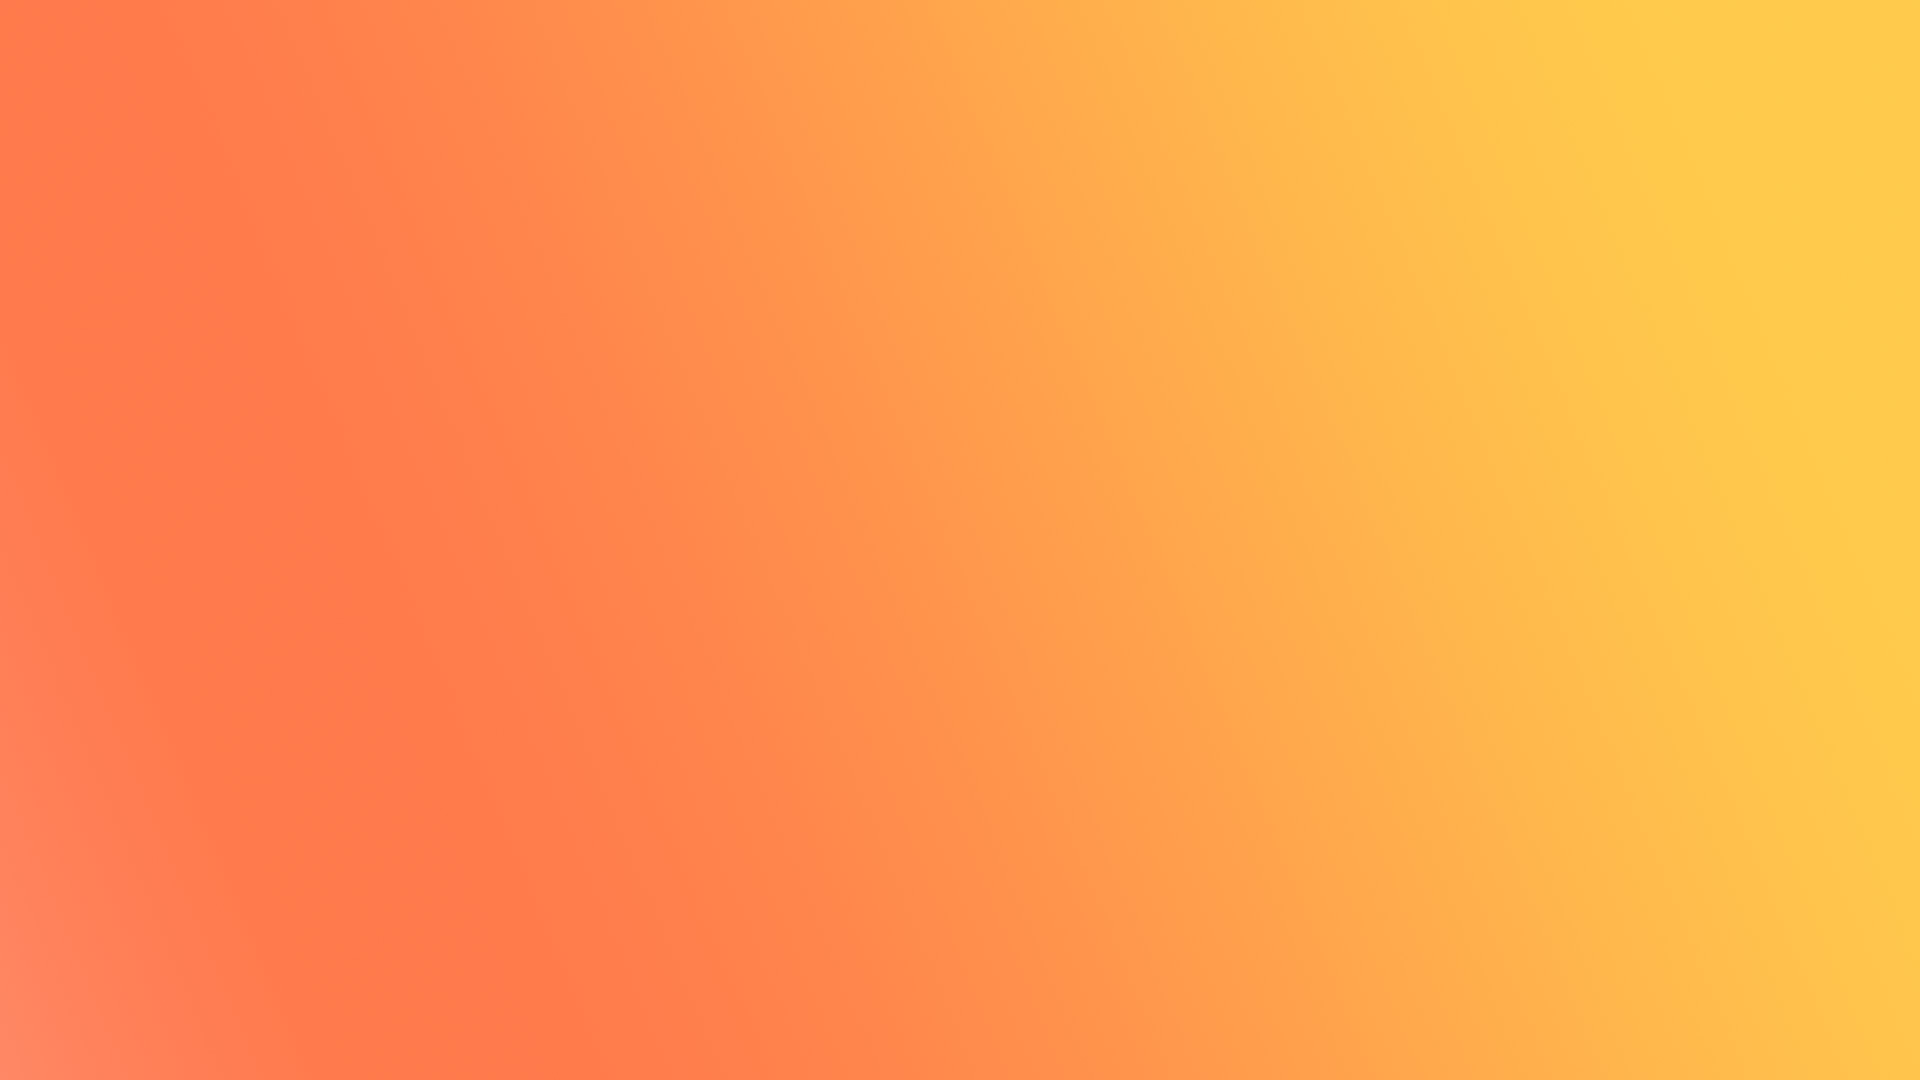 orange-yellow-Gradient-Background